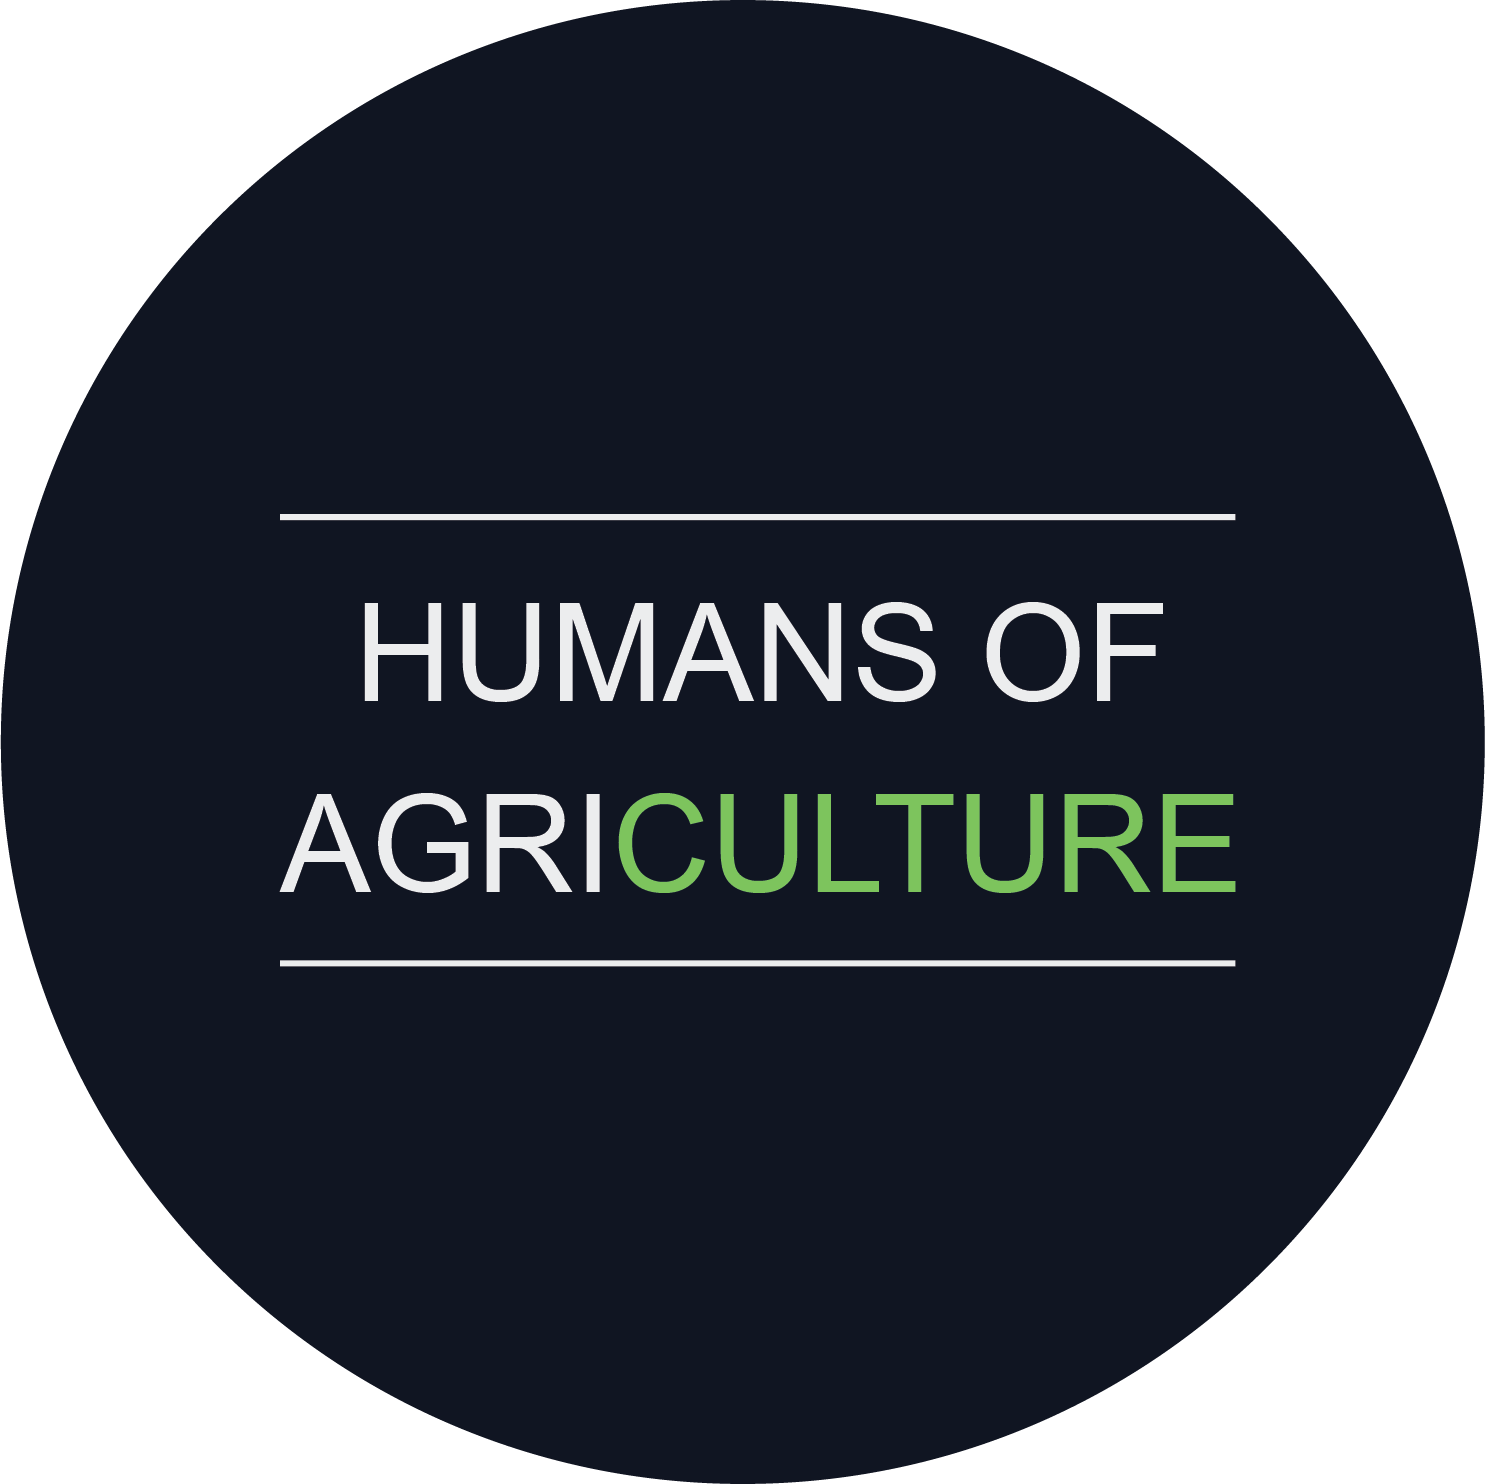 Humans of Agriculture